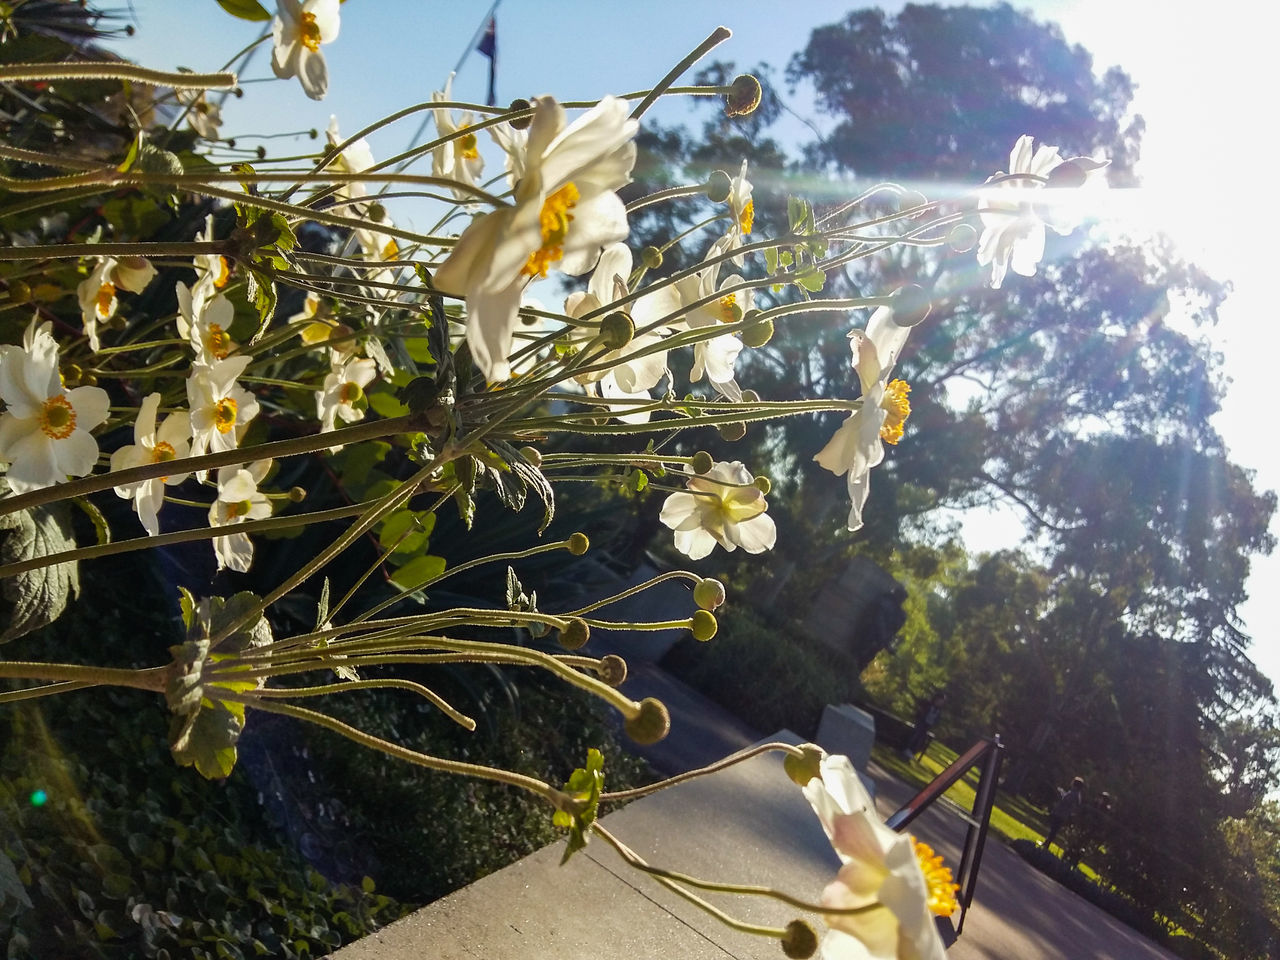 growth, tree, day, nature, outdoors, sunlight, plant, beauty in nature, no people, flower, freshness, close-up, sky